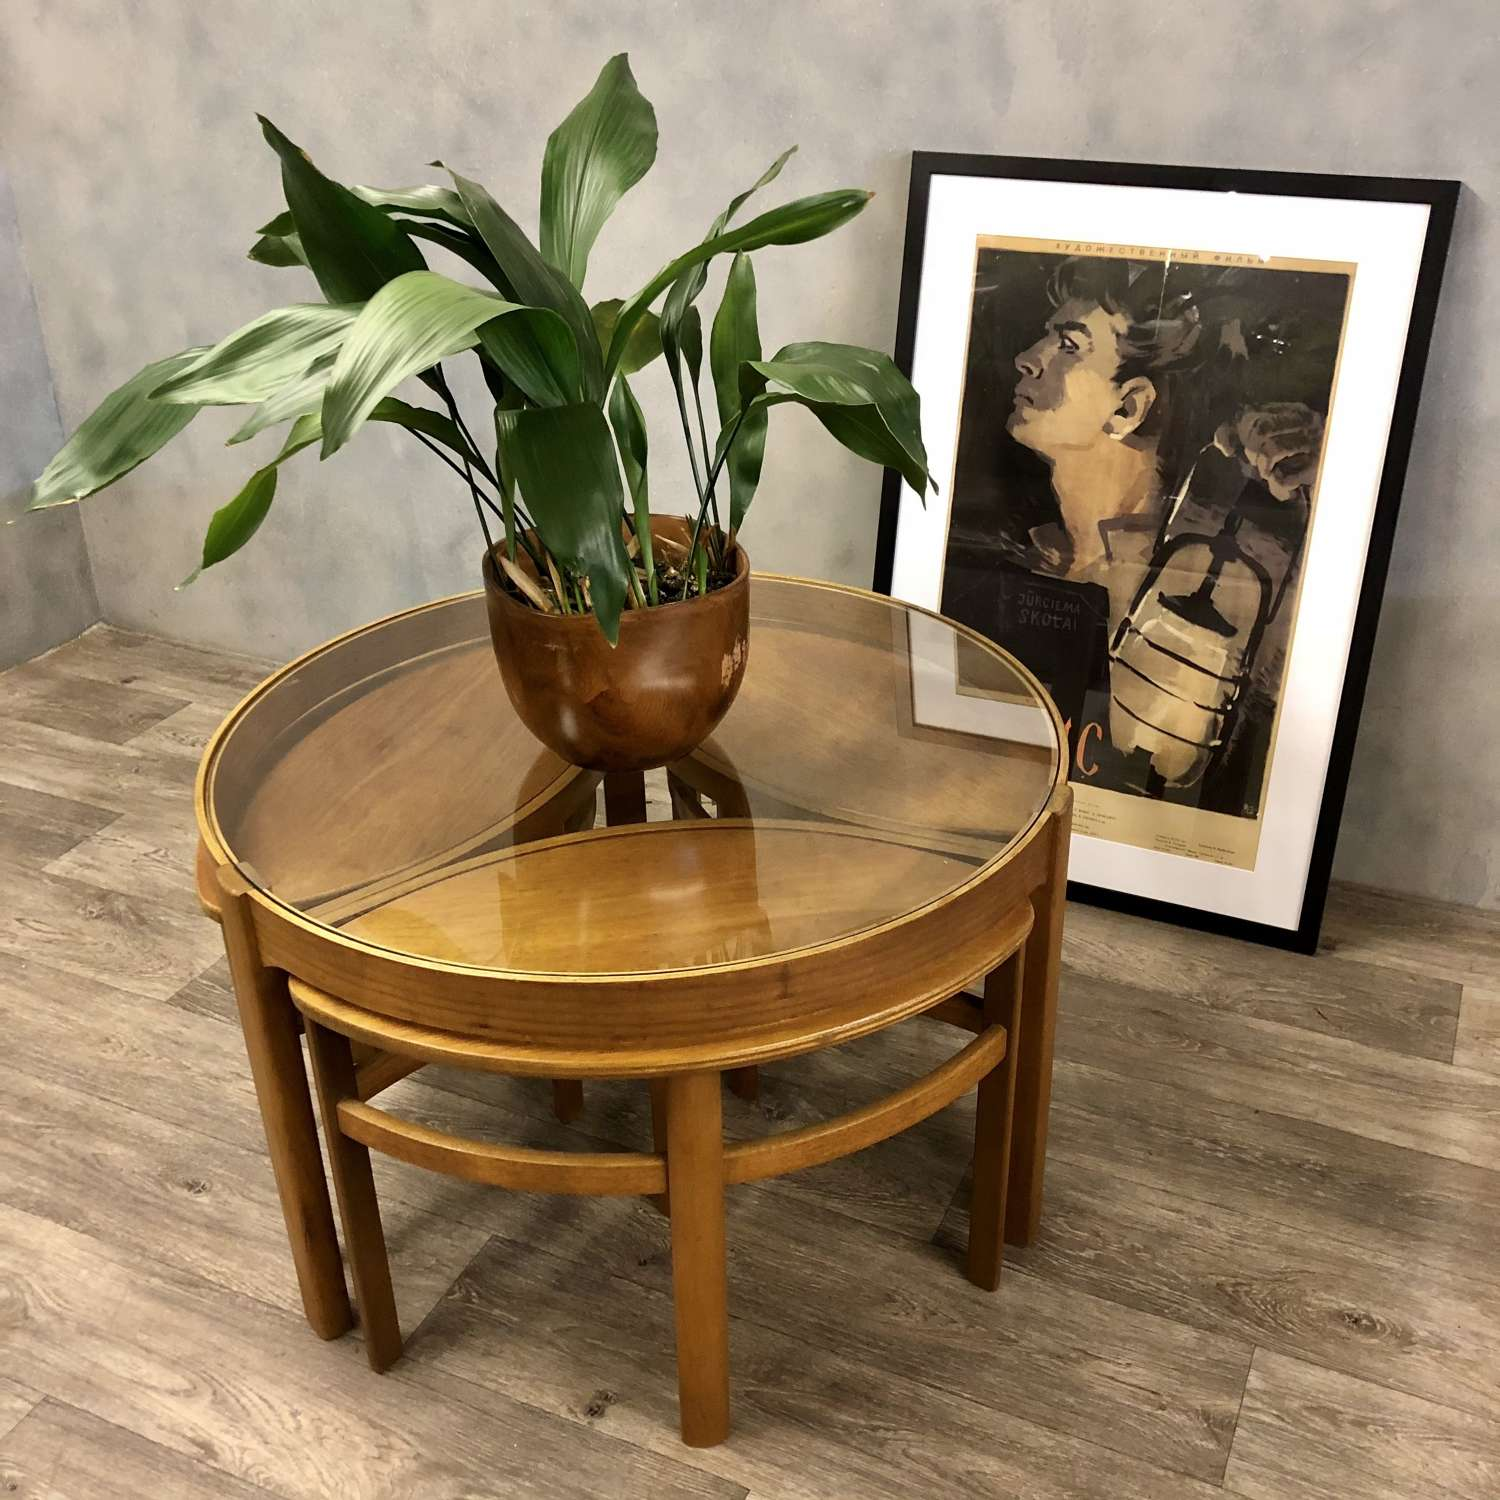 Midcentury Nathan coffee table